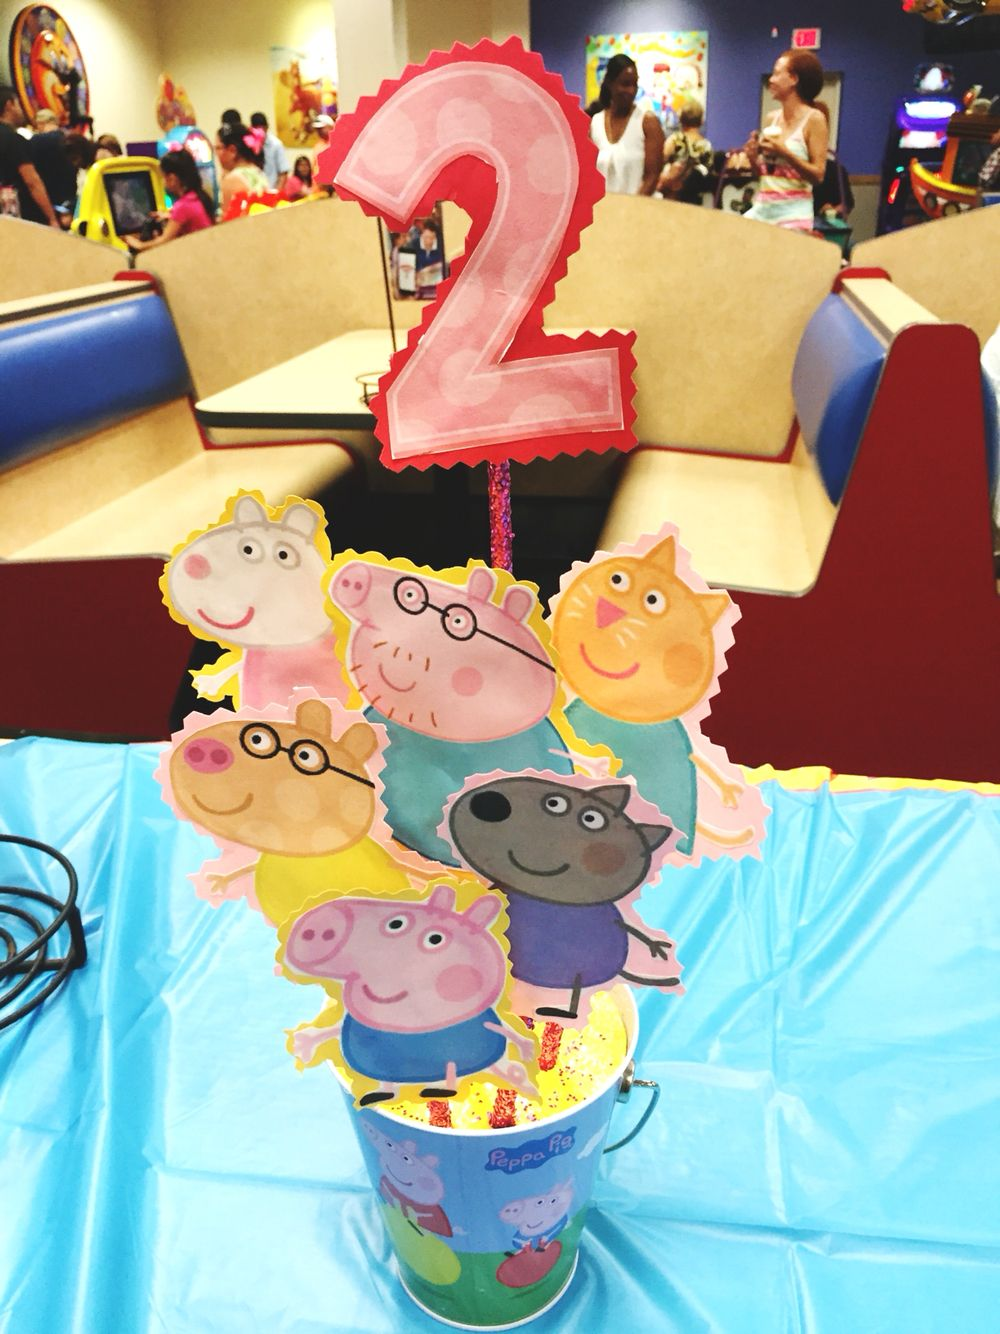 Peppa Pig Party Diy Centerpiece Decorations Birthday Ideas Pig